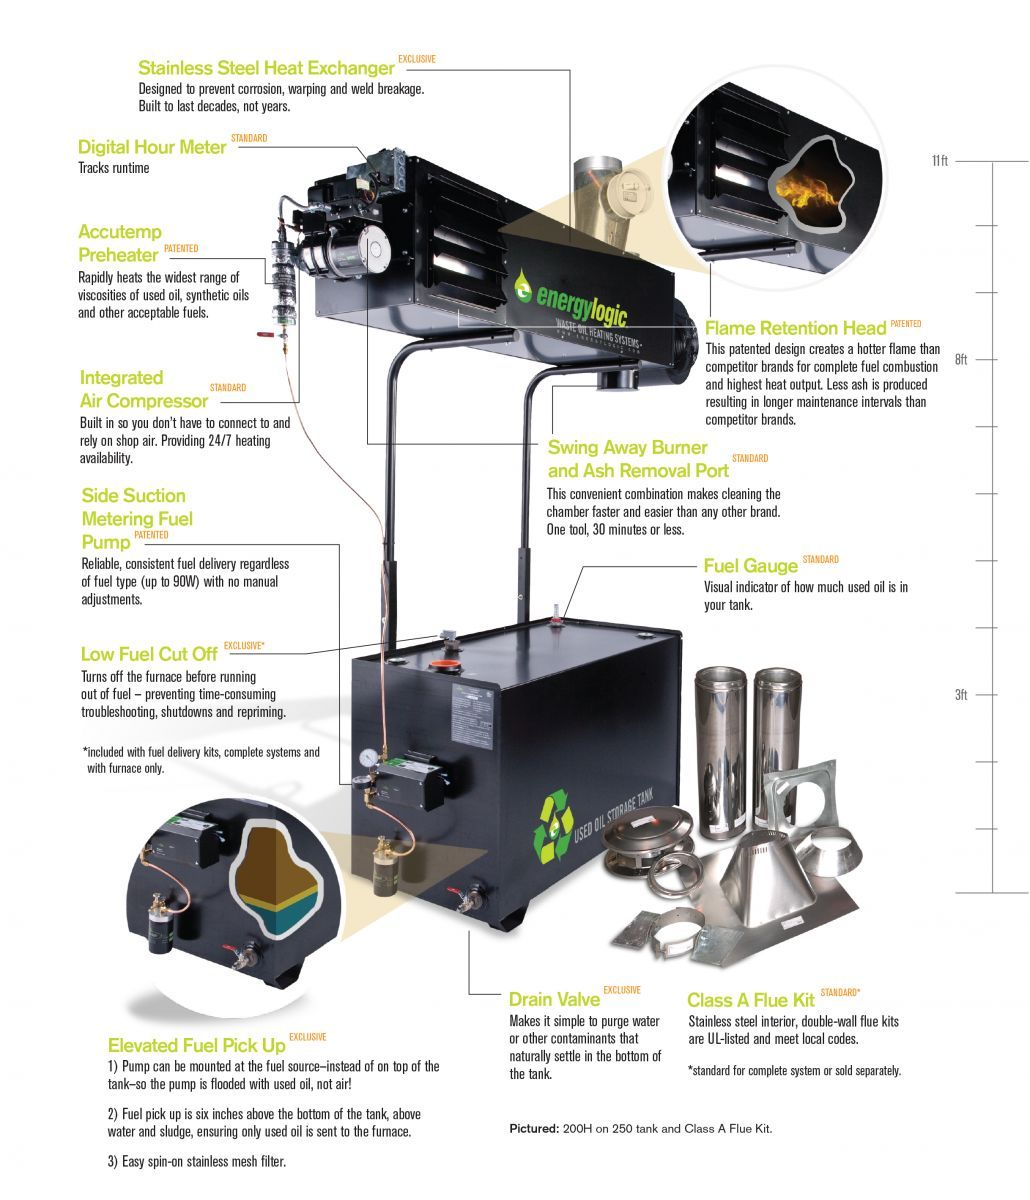 Complete Waste Oil Heater Including Furnace System And Tank With Images Oil Heater Heating Systems Furnace System